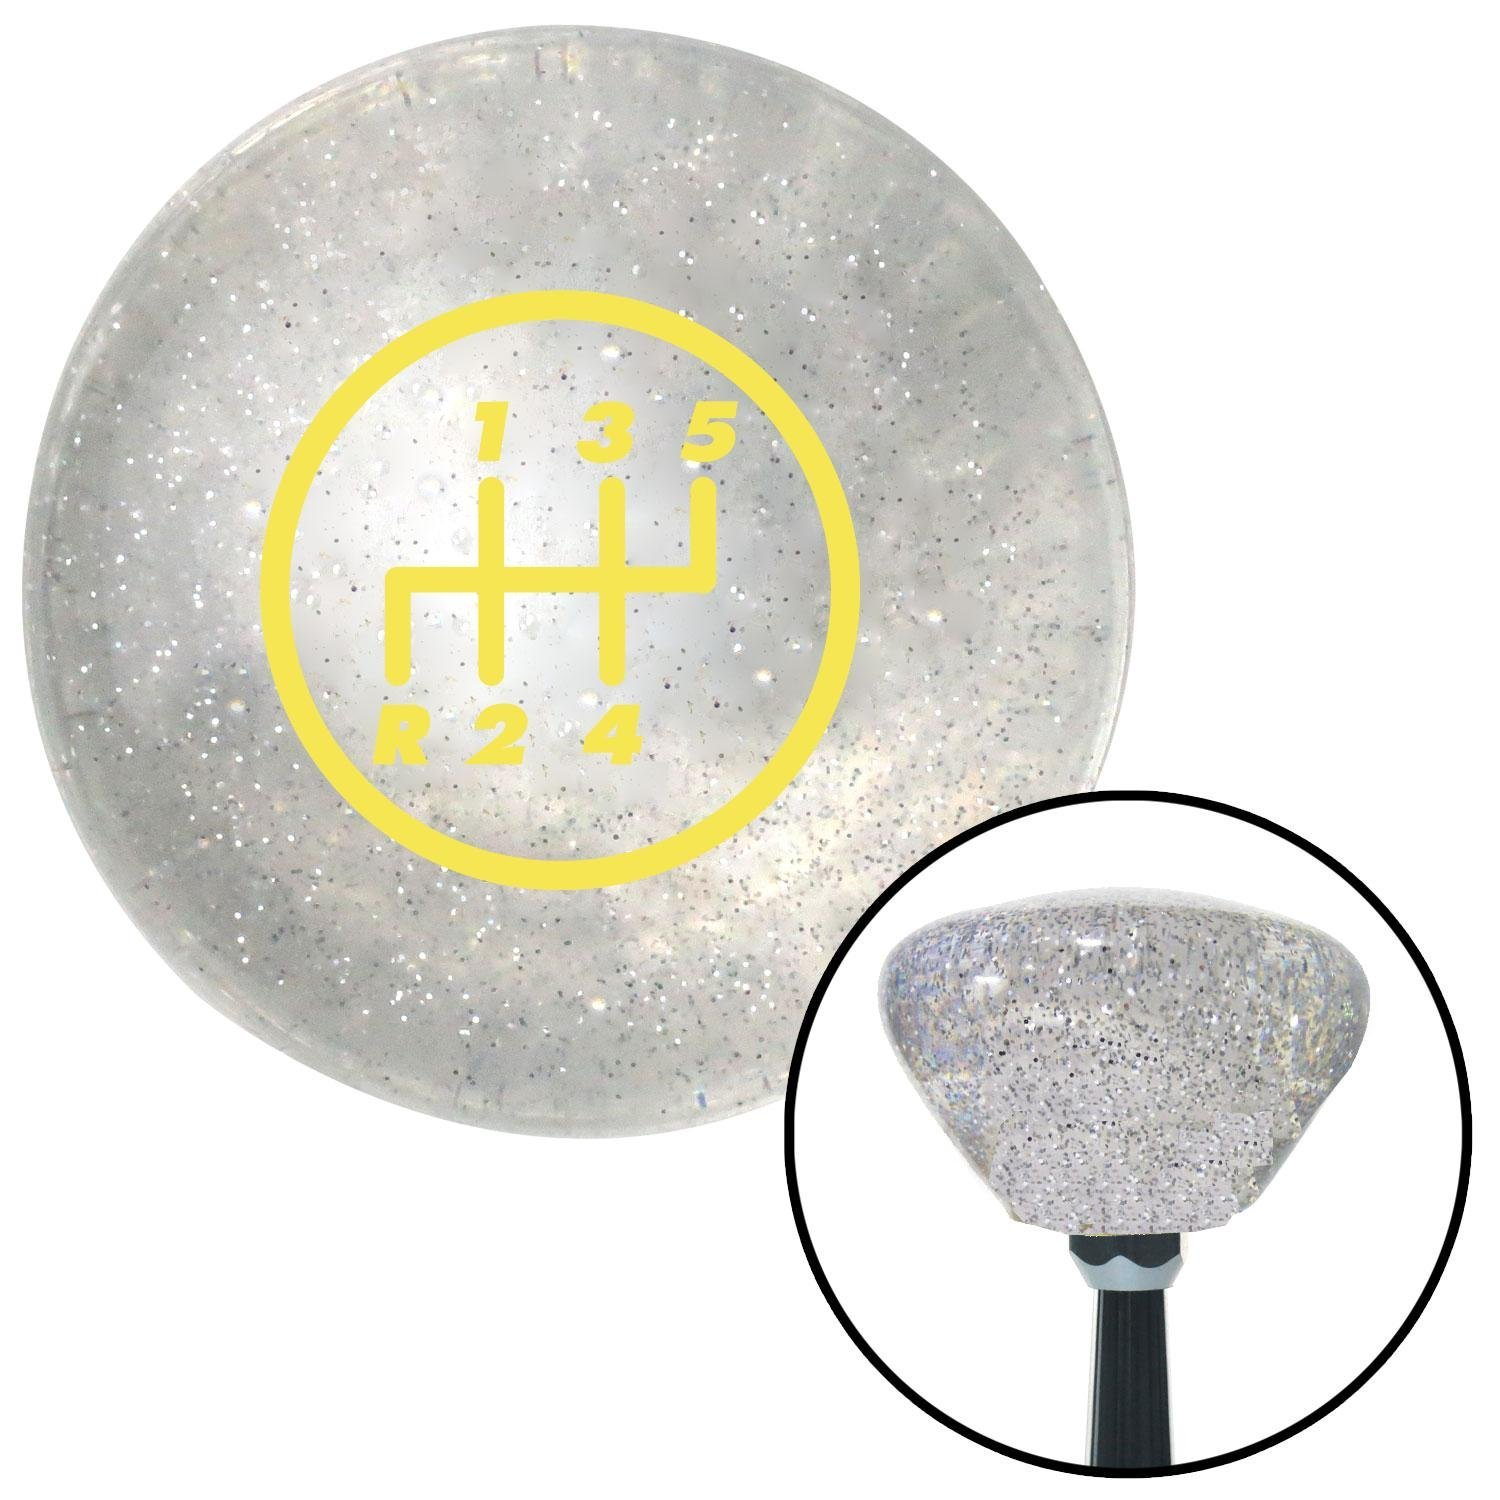 American Shifter 159108 Clear Retro Metal Flake Shift Knob with M16 x 1.5 Insert Yellow 5 Speed Shift Pattern - 5RDL